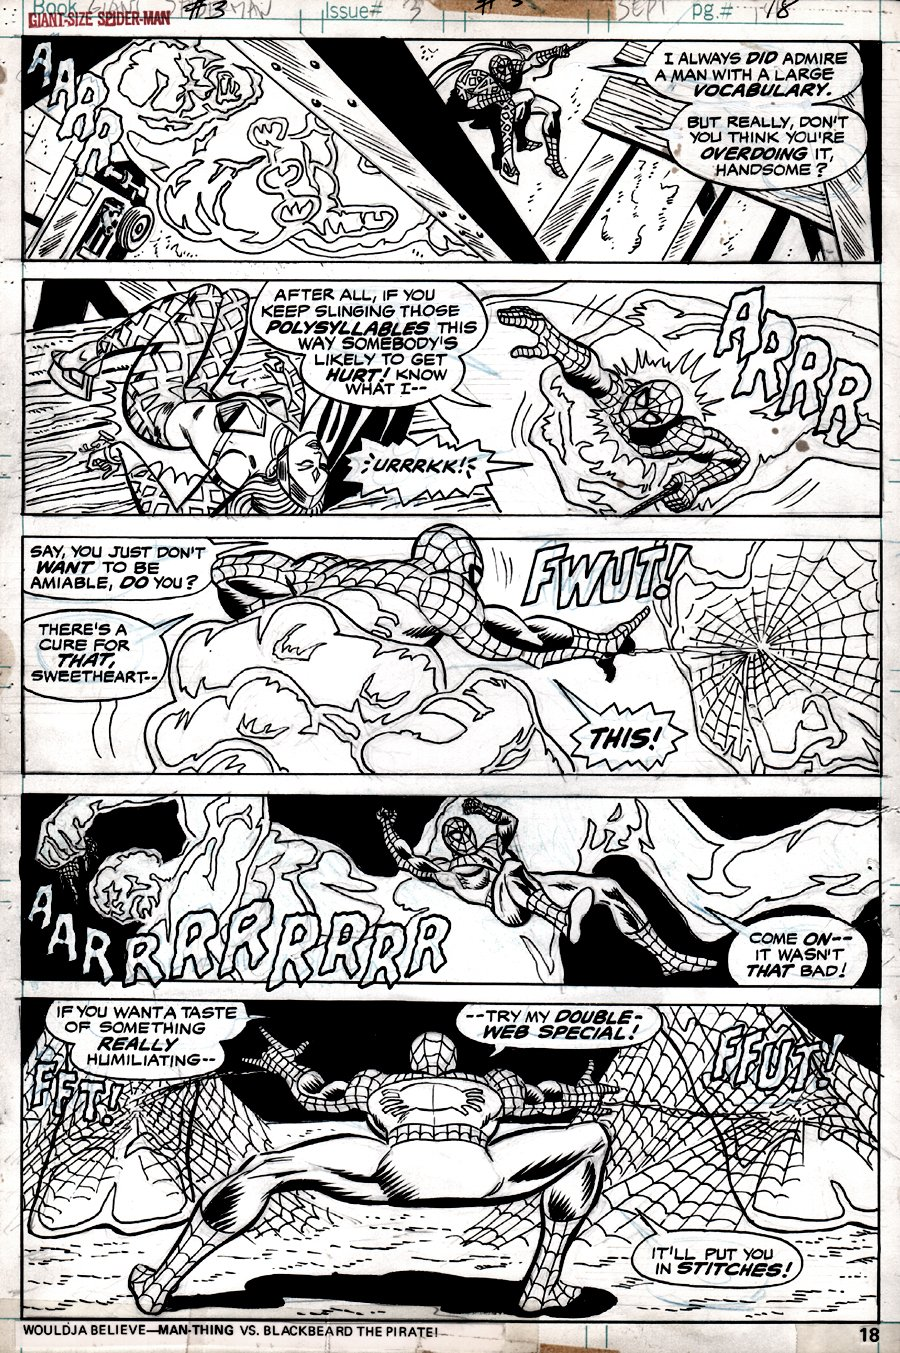 Giant-Size Spider-Man #3 p 18 (SPIDER-MAN IN ALL 5 PANELS!) 1974